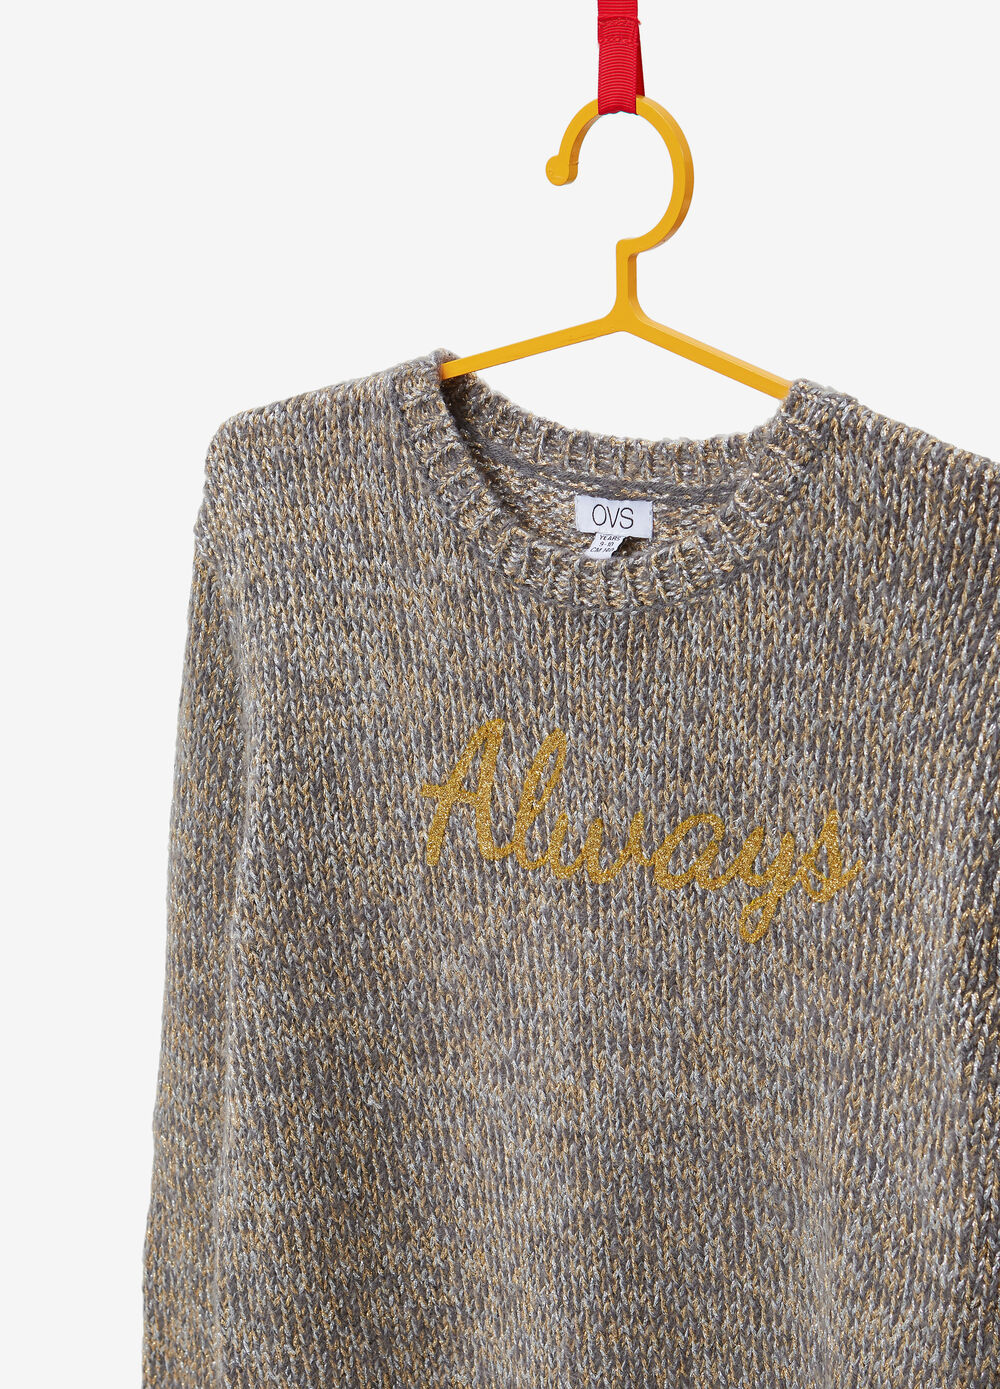 Knitted glitter pullover with printed lettering